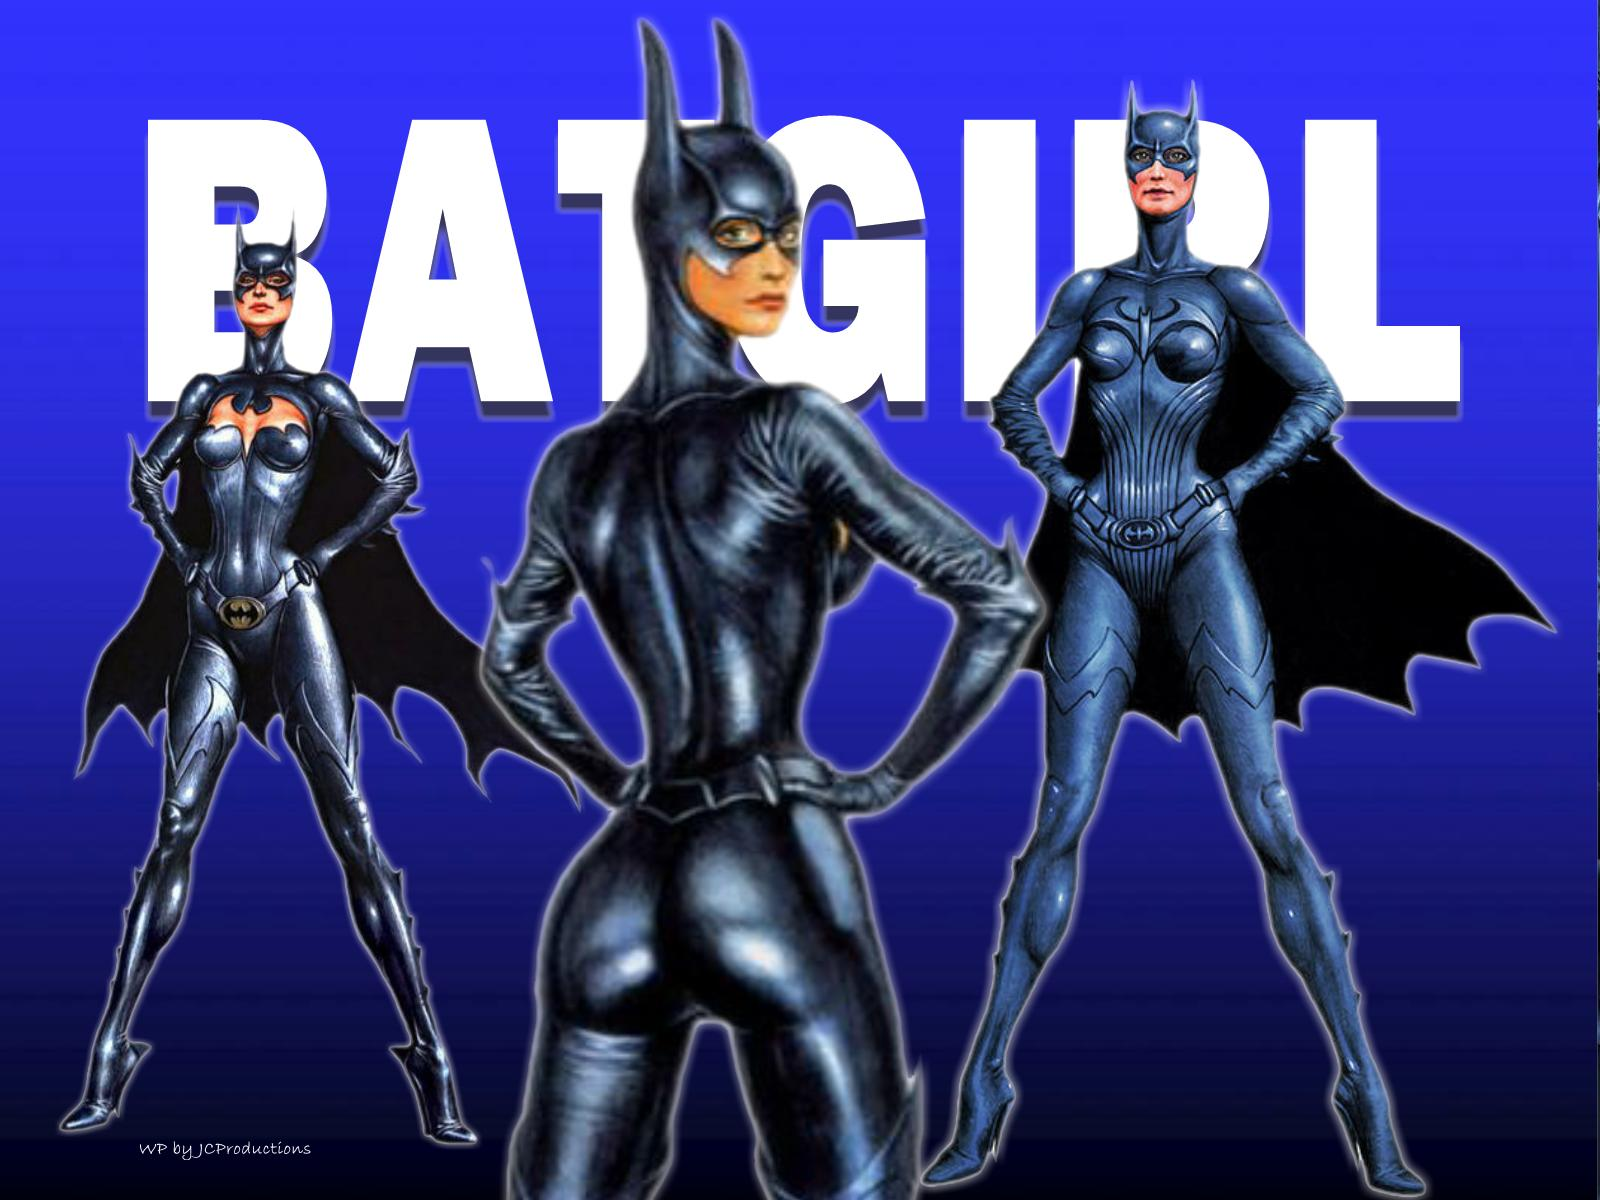 Batgirl Cartoon Wallpaper